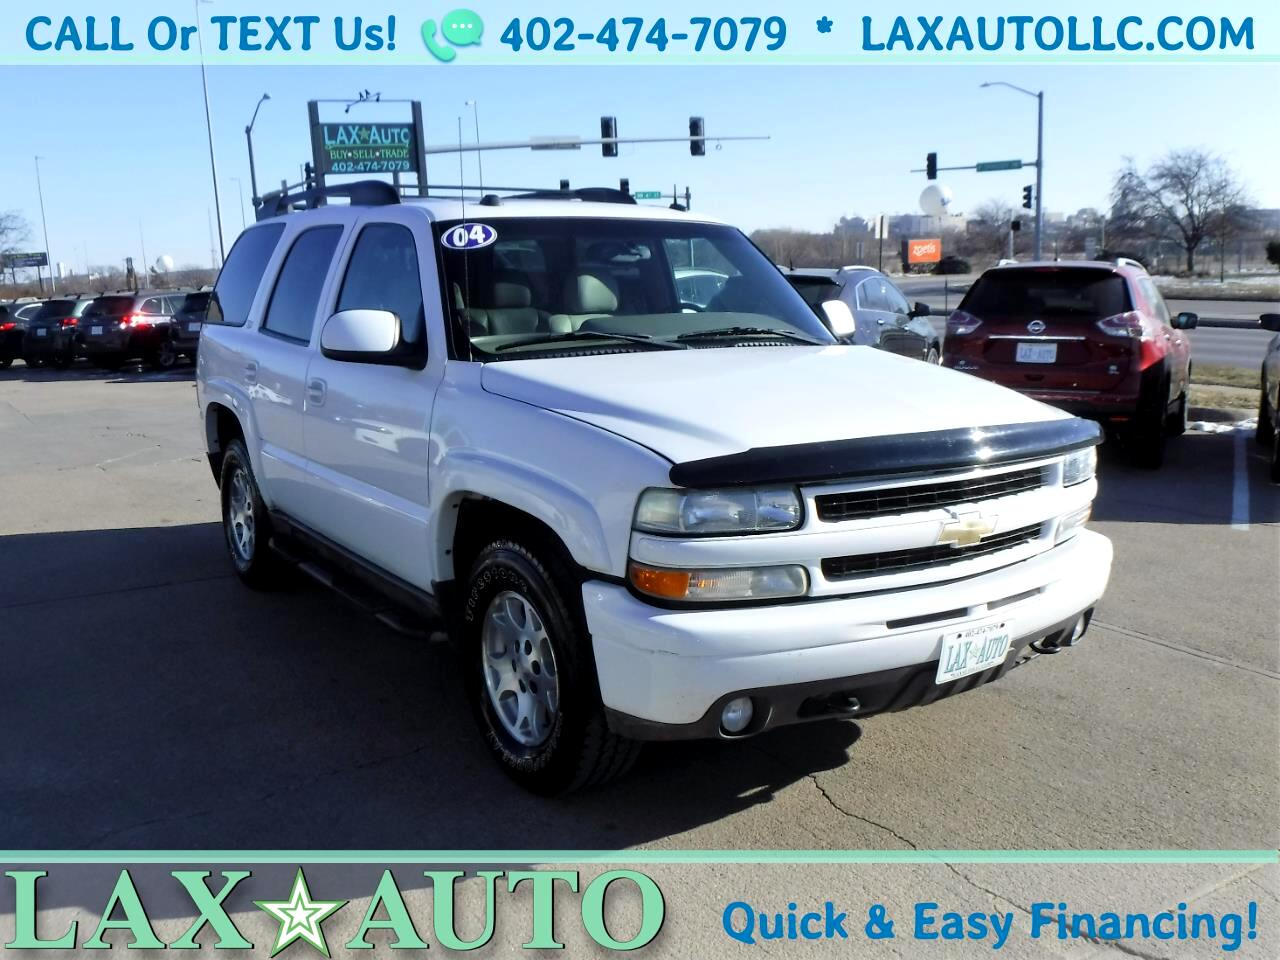 2004 Chevrolet Tahoe 4WD LT Z71 * w/ 3rd row! DVD/Video! Bose Sound!